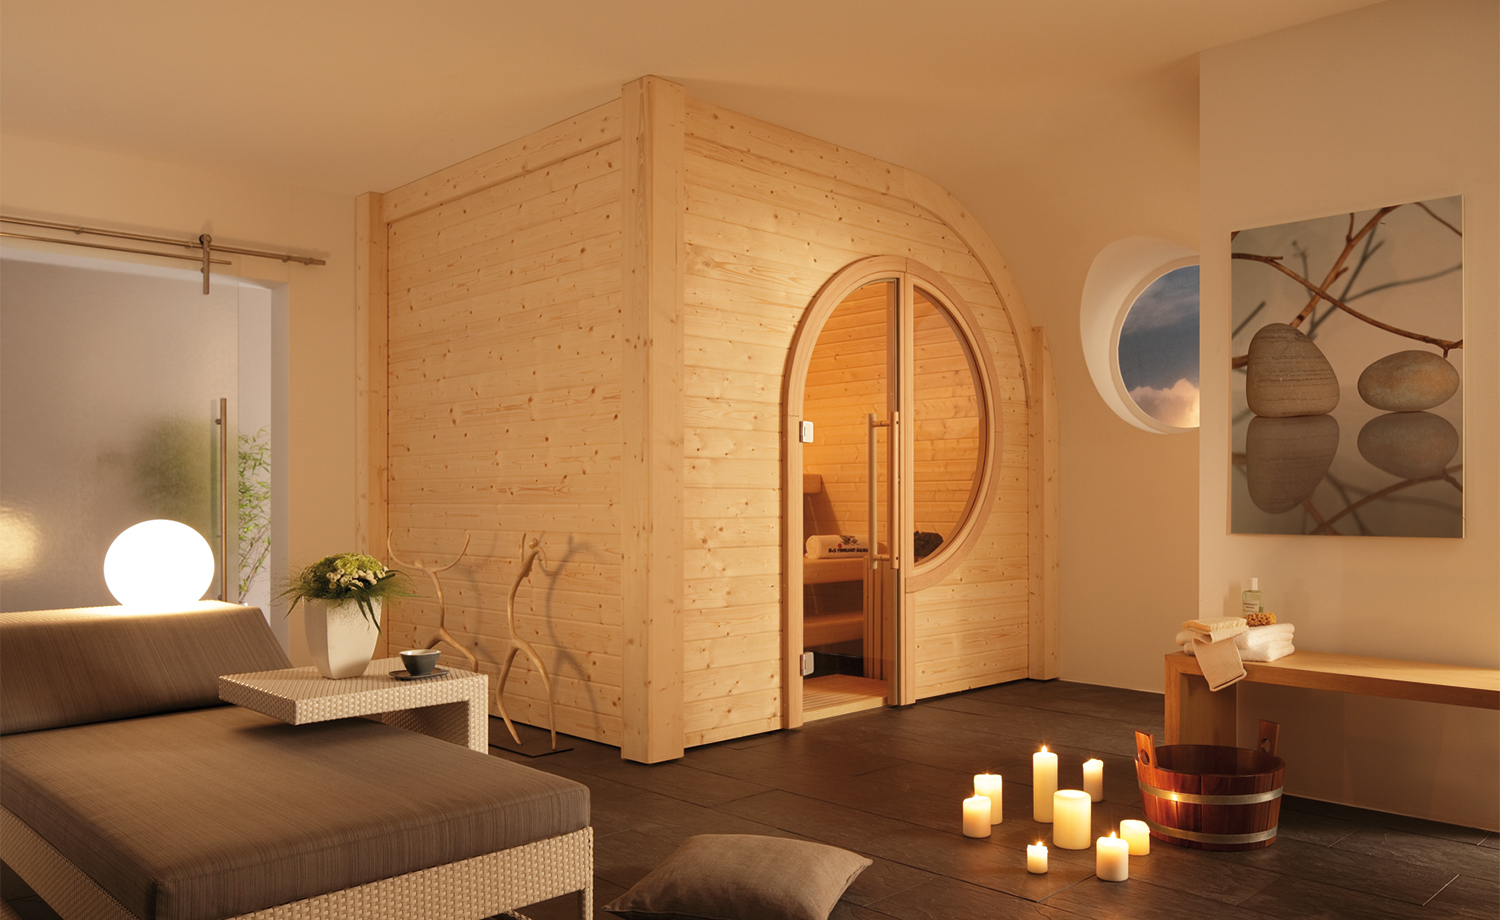 sauna im keller was muss man beachten ostseesuche com. Black Bedroom Furniture Sets. Home Design Ideas